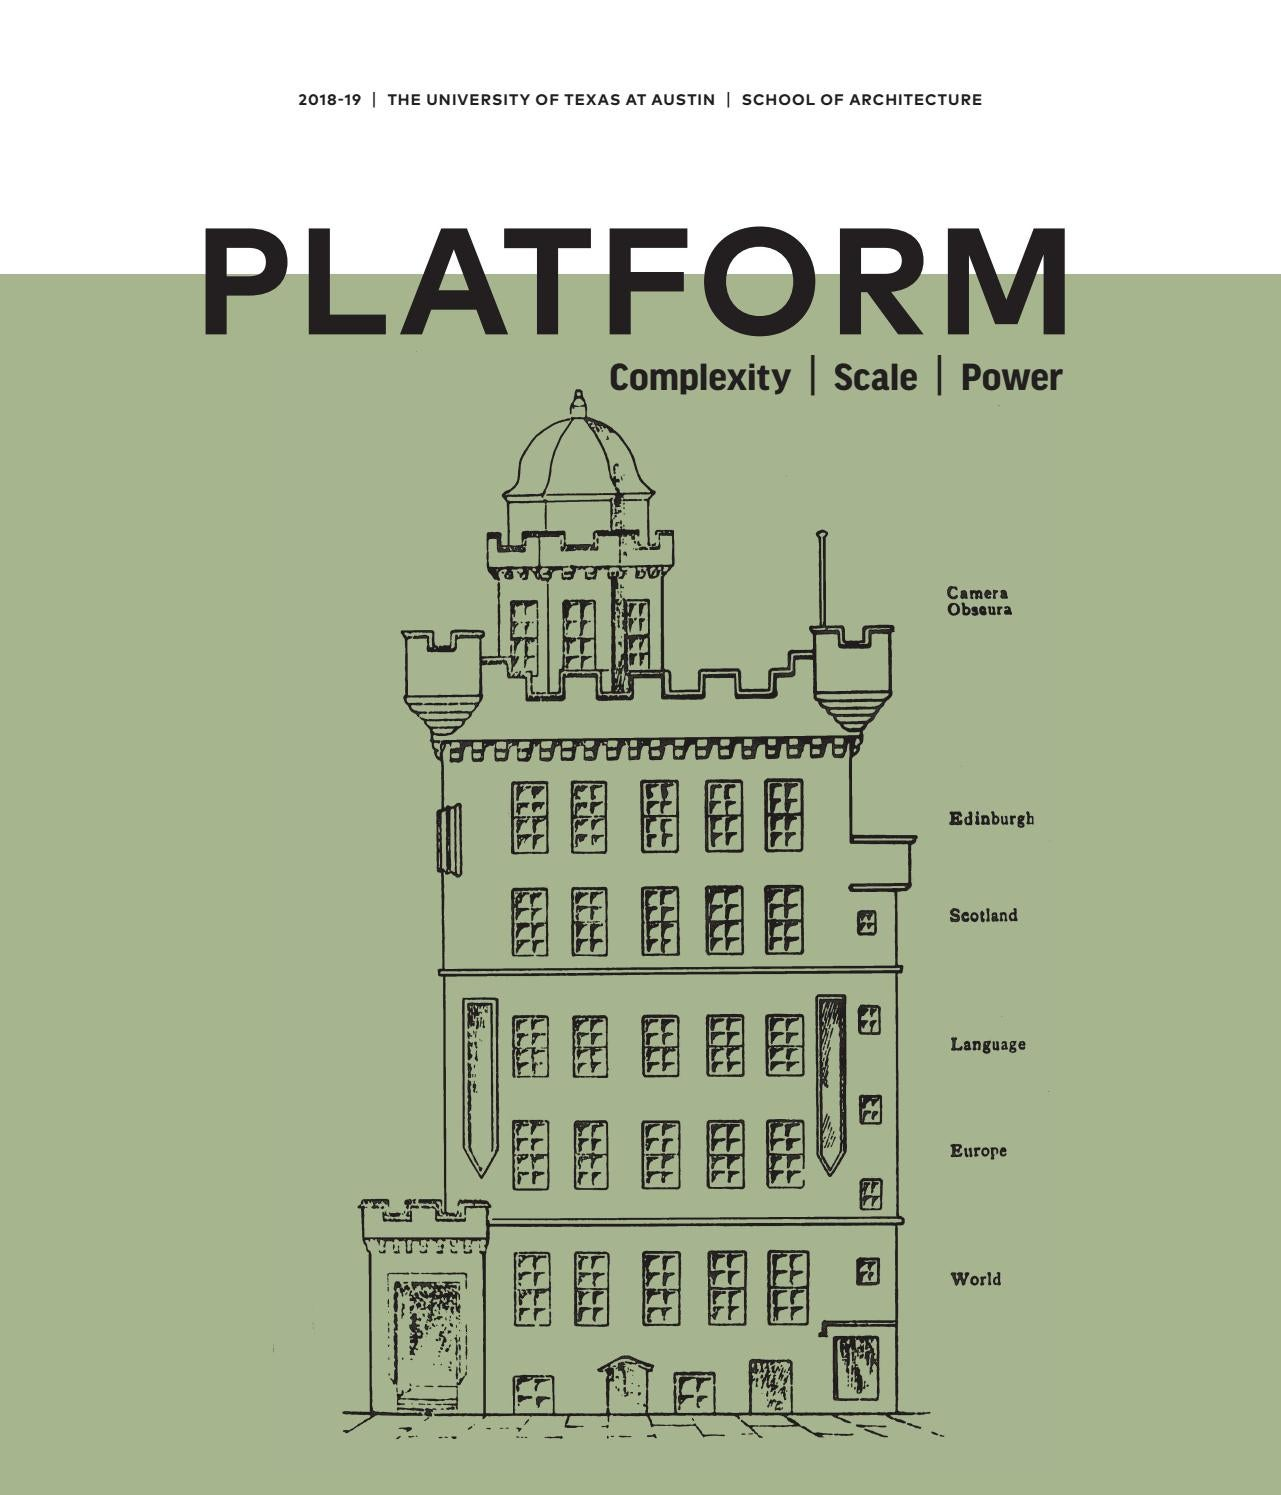 PLATFORM: Complexity | Scale | Power by UT School of